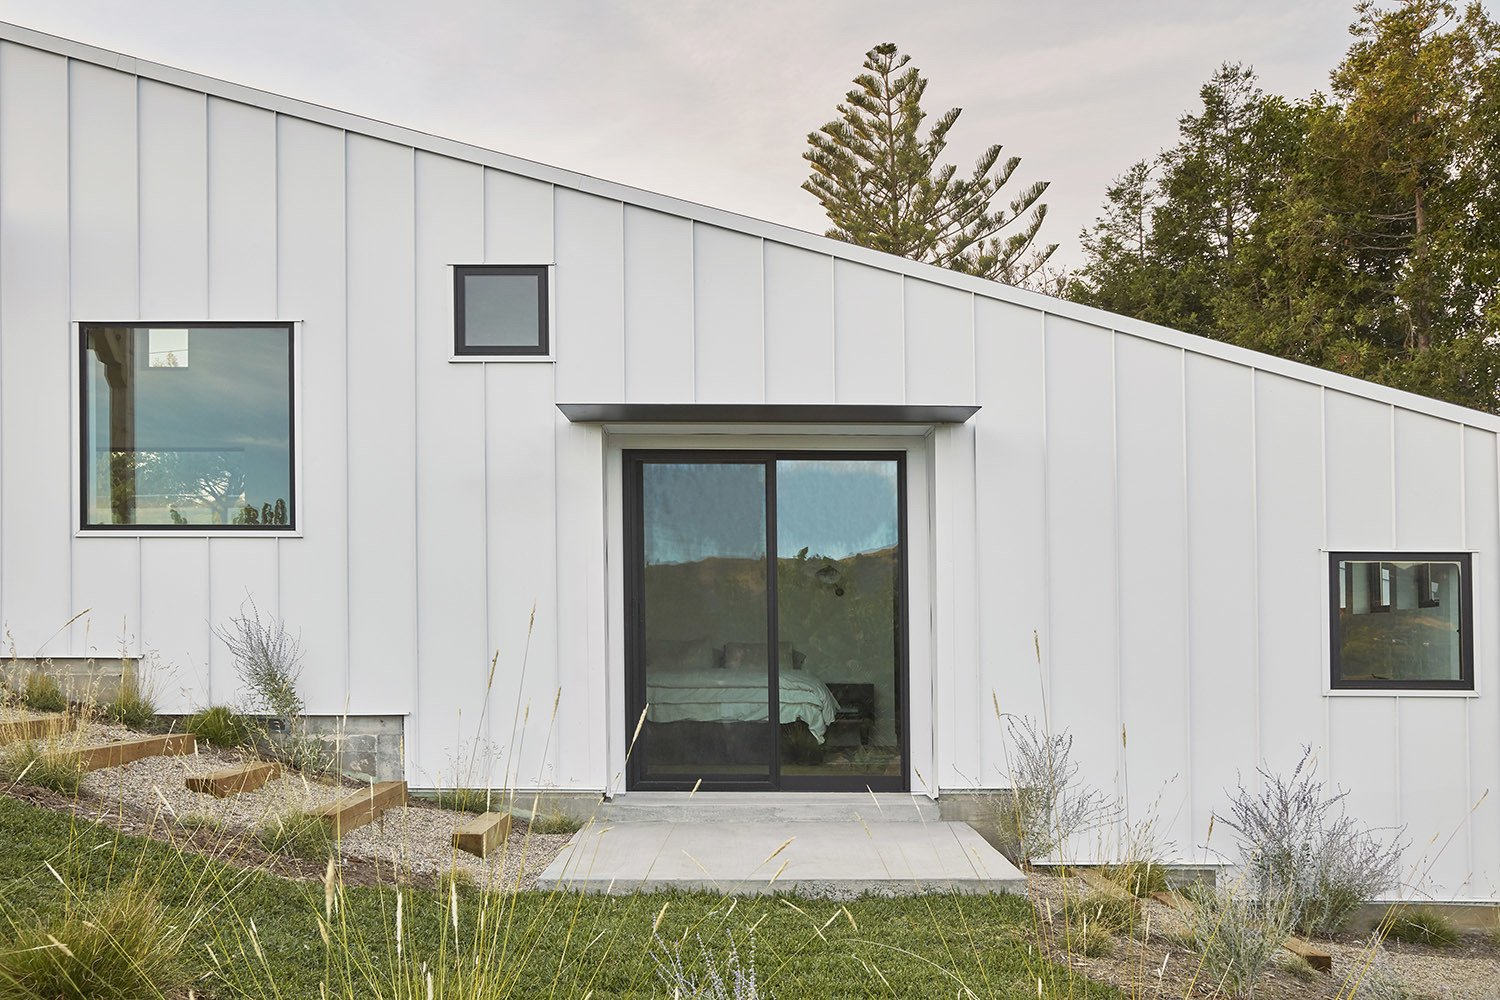 Exterior, Metal Siding Material, House Building Type, Gable RoofLine, and Metal Roof Material  Shepard Mesa House